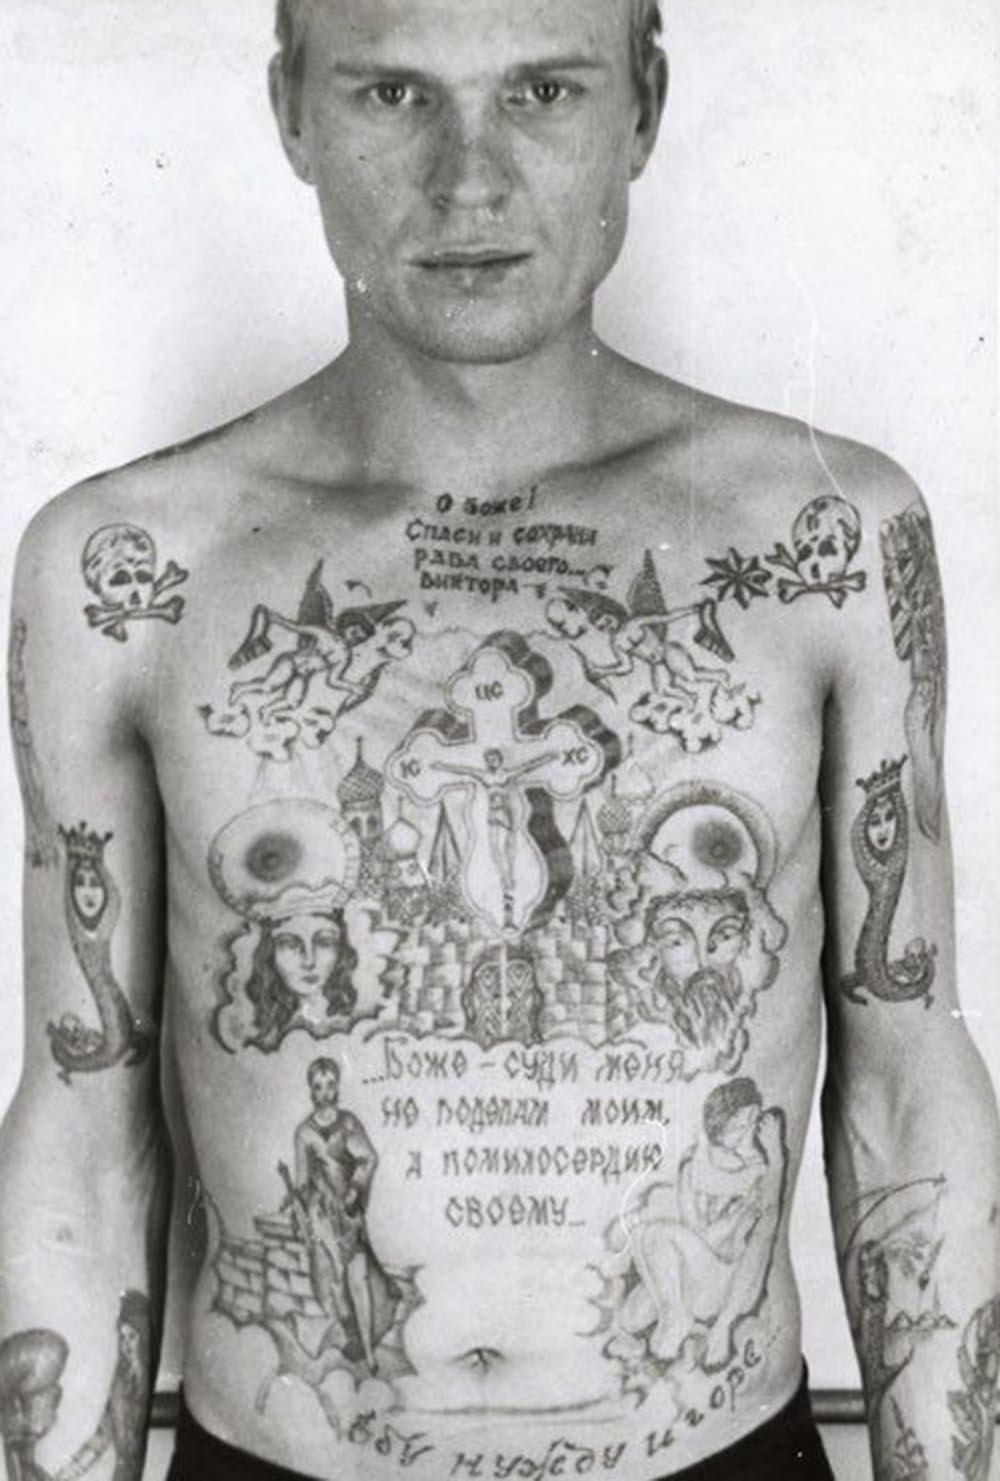 Text above the cross reads 'O Lord, Save and Protect your servant Viktor.' Text beneath reads 'God do not judge me by my deeds but by your mercy.' Text above the waist reads 'I fuck poverty and misfortune.' The skull and crossbones show the prisoner is serving a life term. The single eight-pointed star denotes that he is a 'semi-authority' among thieves. The girl catching her dress with a fishing line on his left forearm is a tattoo worn by hooligans and rapists. The snake coiled around human remains (positioned on the middle third of each arm) is a variation on an old thieves' tattoo. The snake is a symbol of temptation; here the snake's head has been replaced by that of a woman, the temptress. Tattooed on the right side of the stomach is a version of Judith (1504) as painted by Giorgione; this is intended as a symbol of a scheming, seductive woman who betrays a noble man.